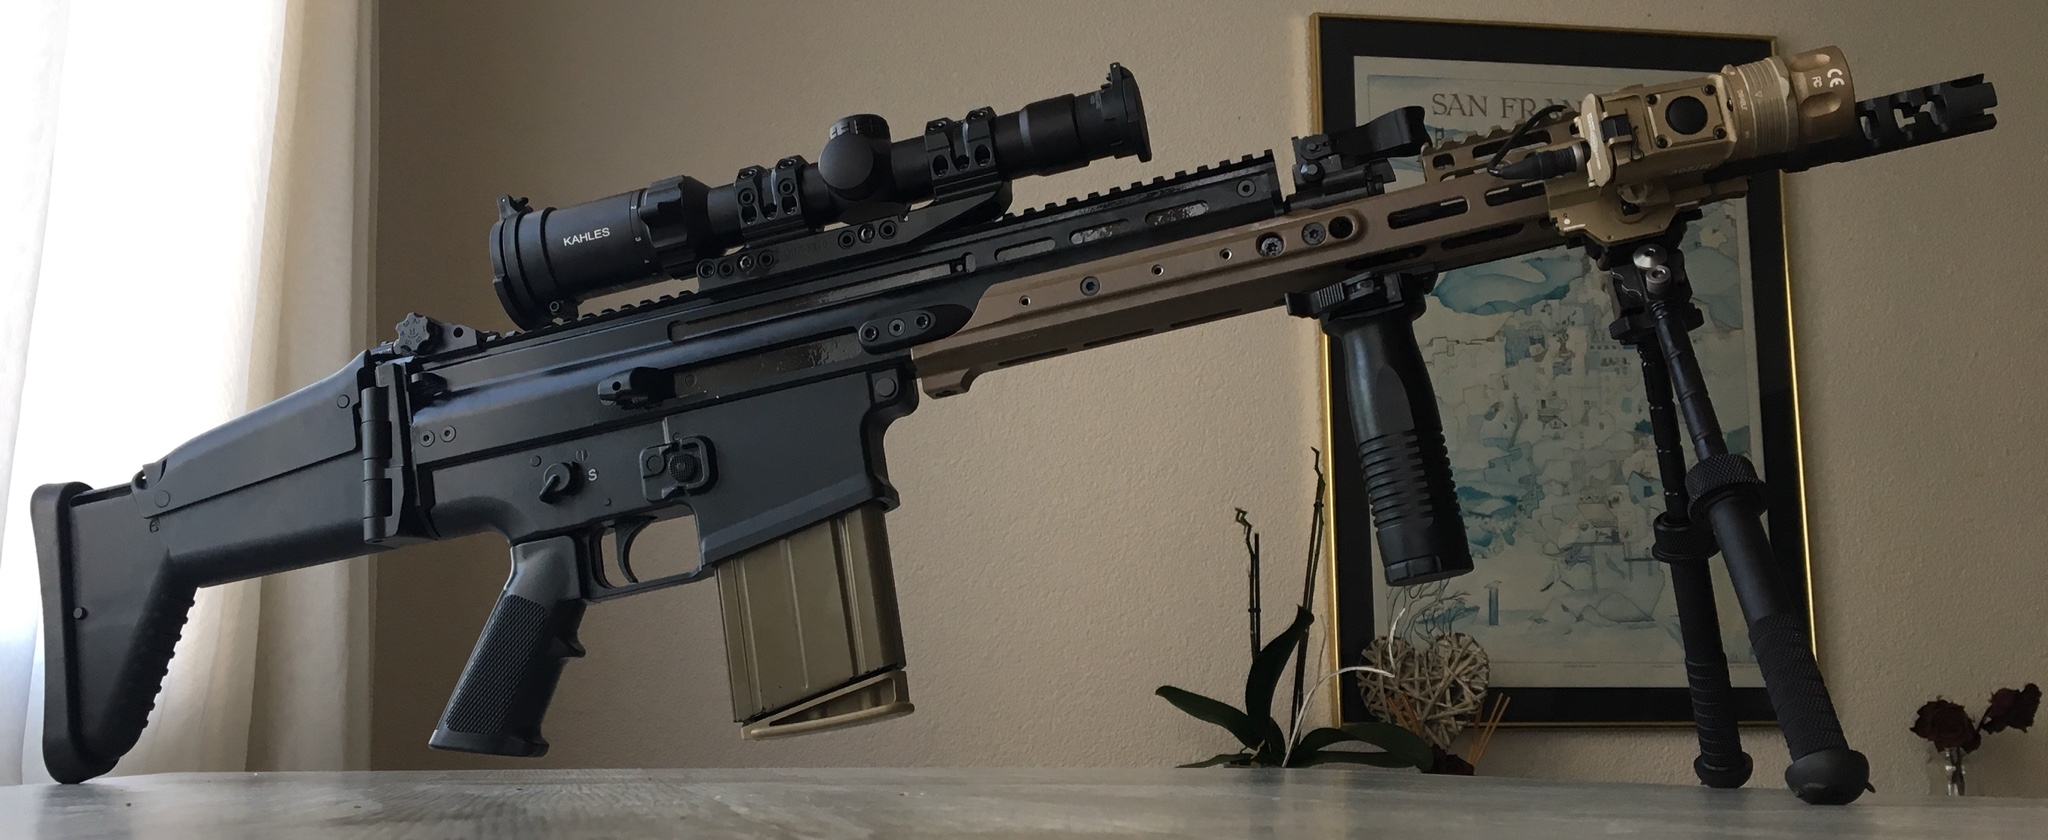 My upgrades FN SCAR 17 / KDG MREX RAIL 6 5